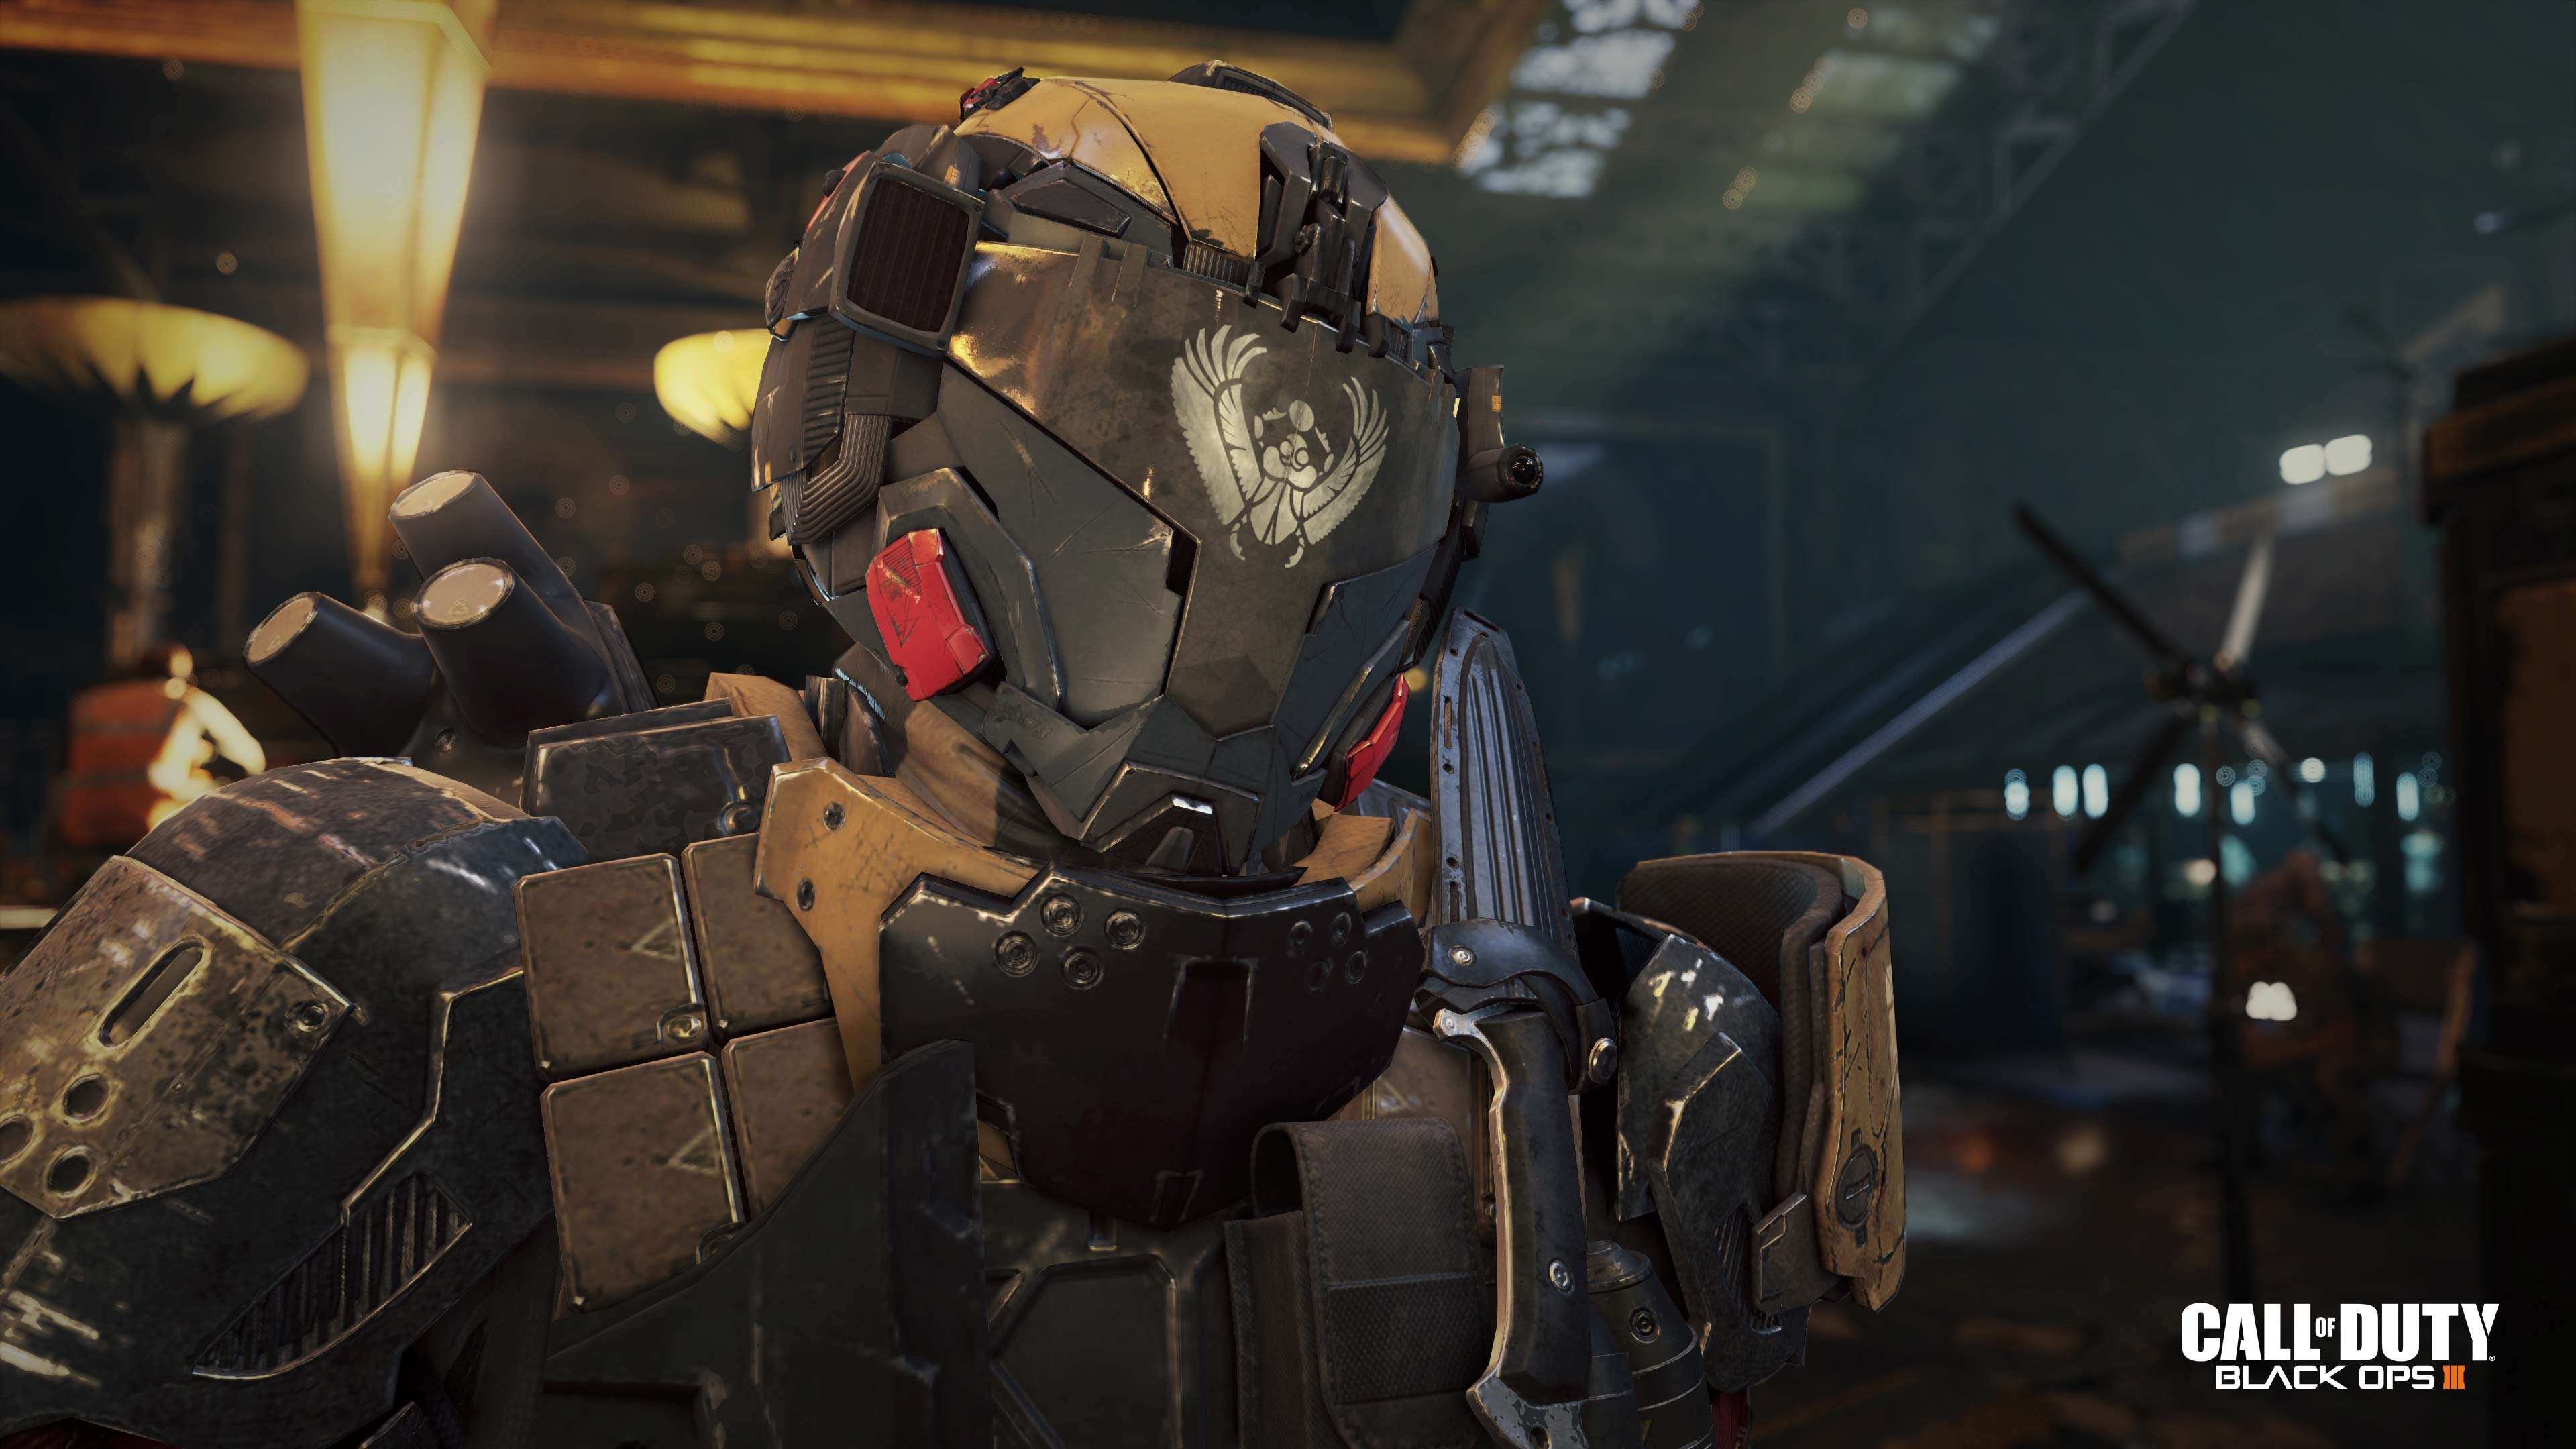 Call of Duty Black Ops III - photo1